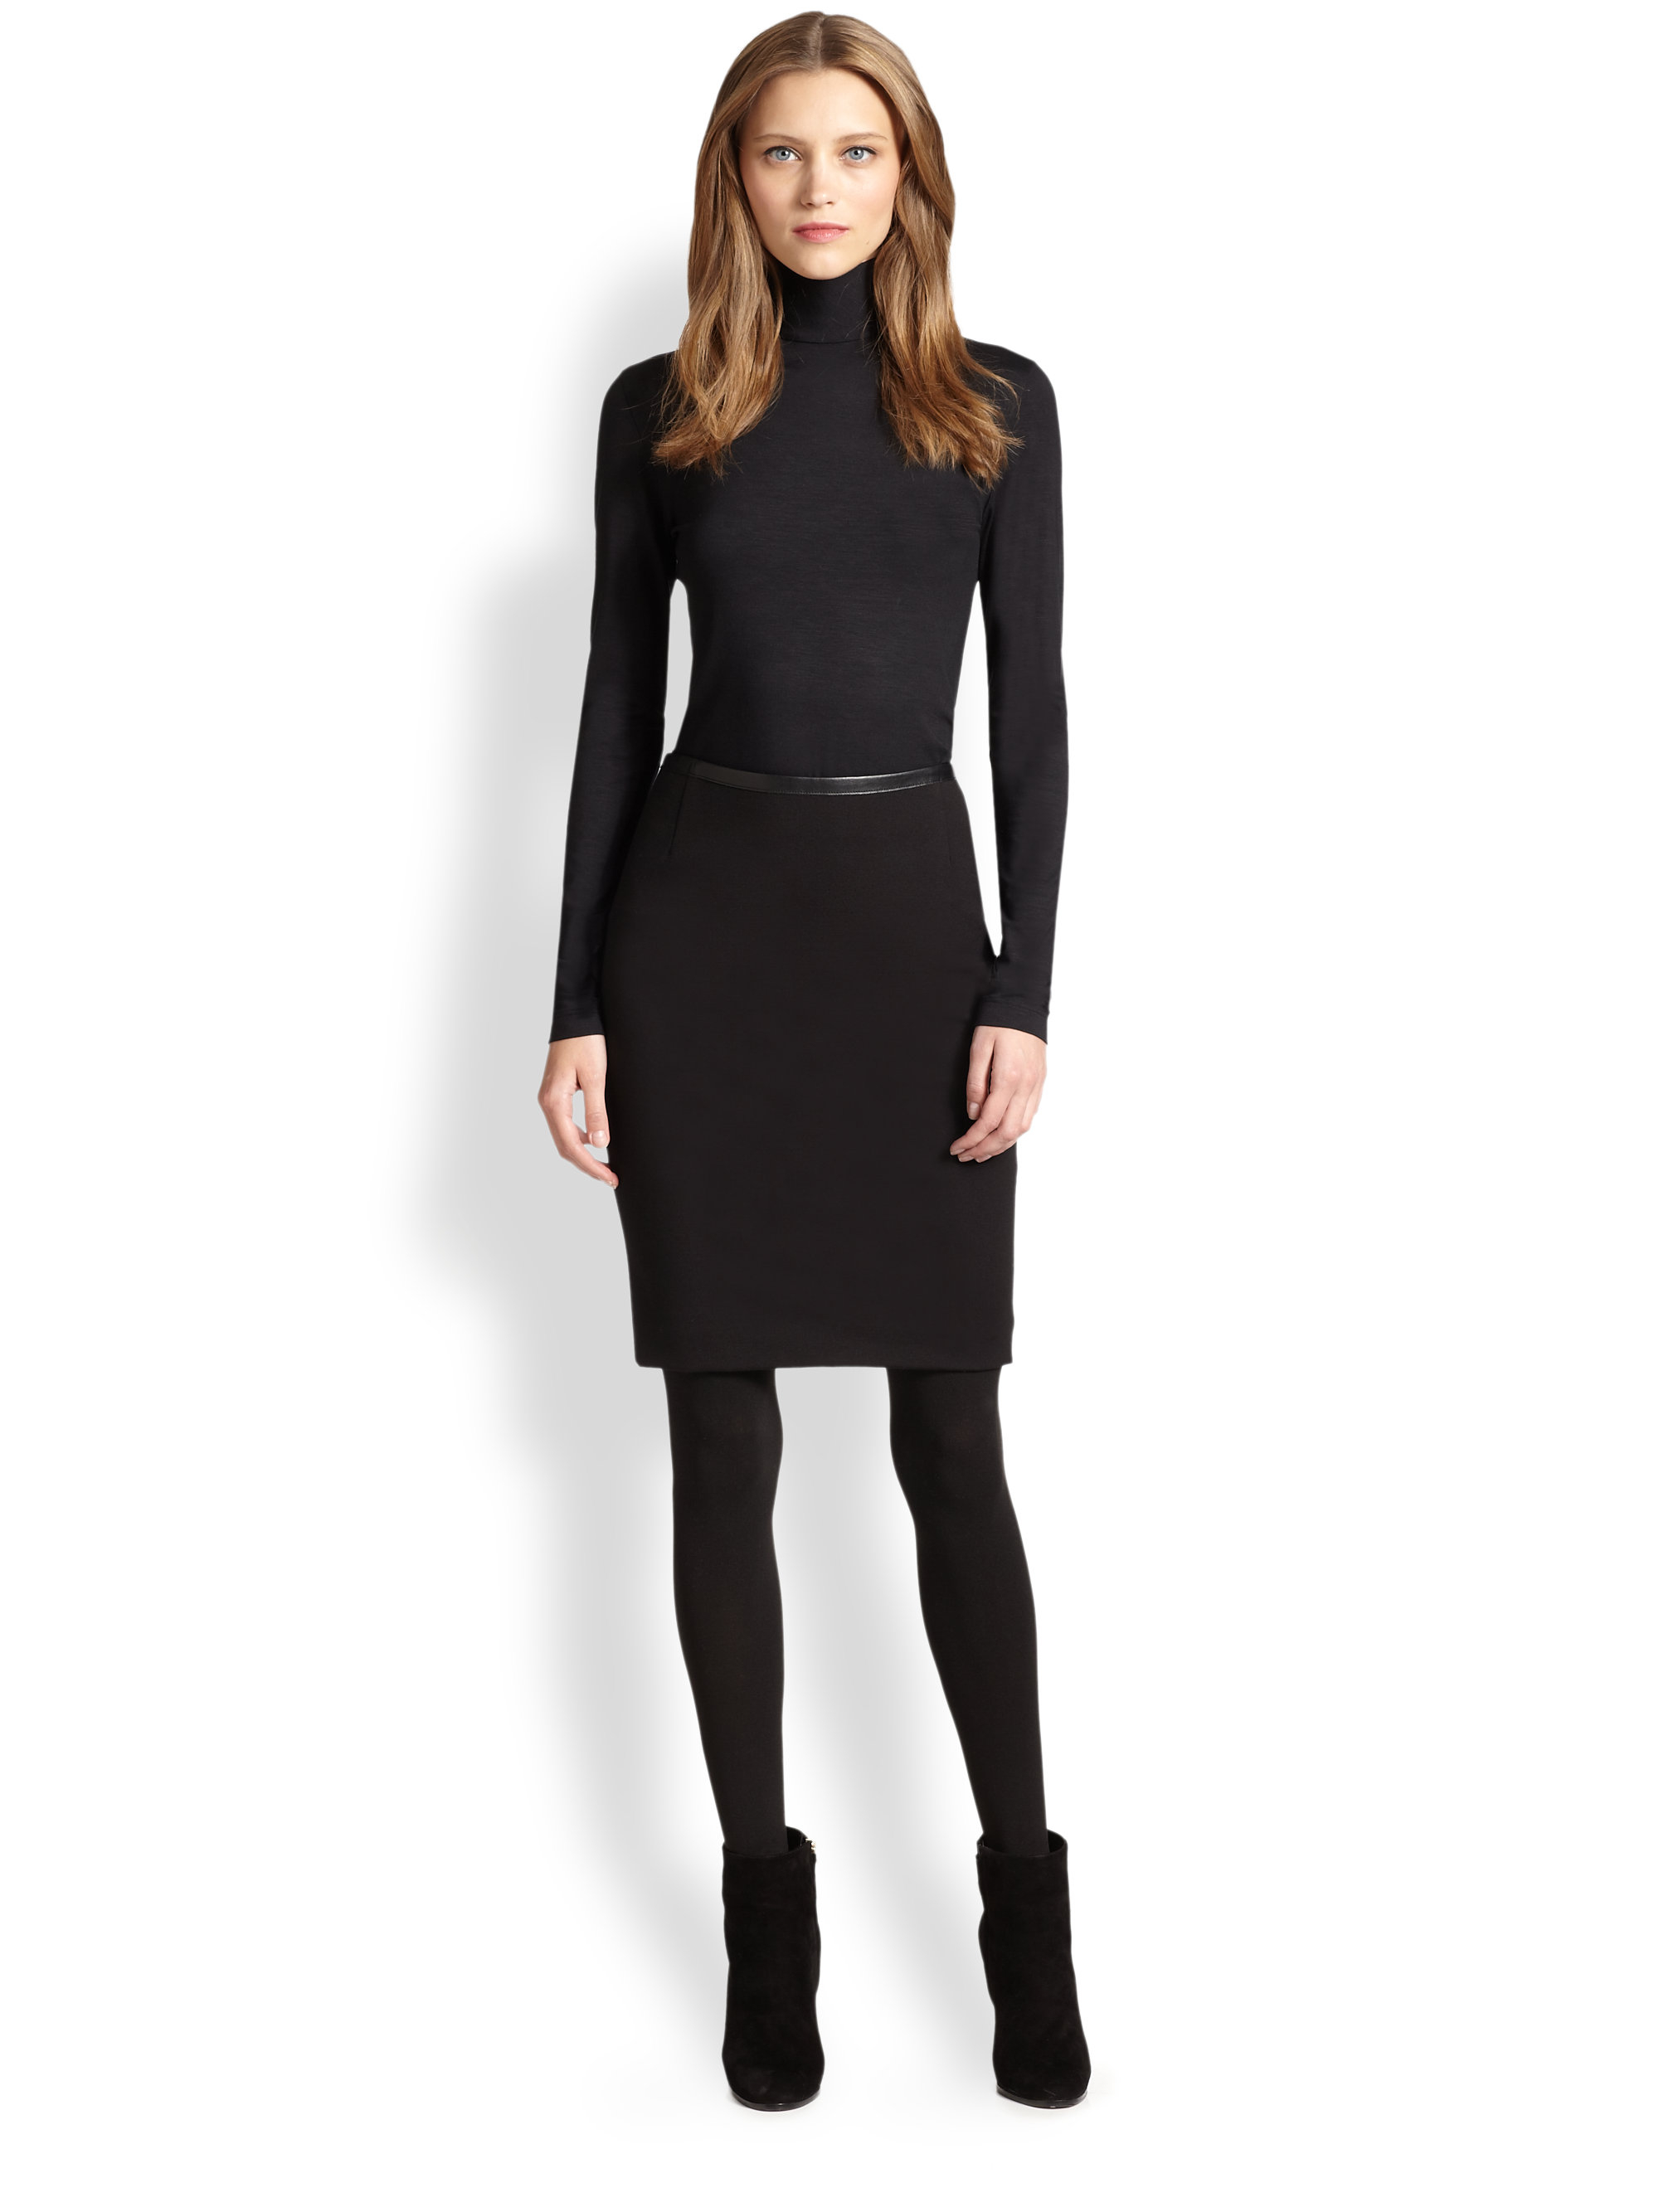 Lyst - Missguided Mariota Faux Leather Pencil Skirt